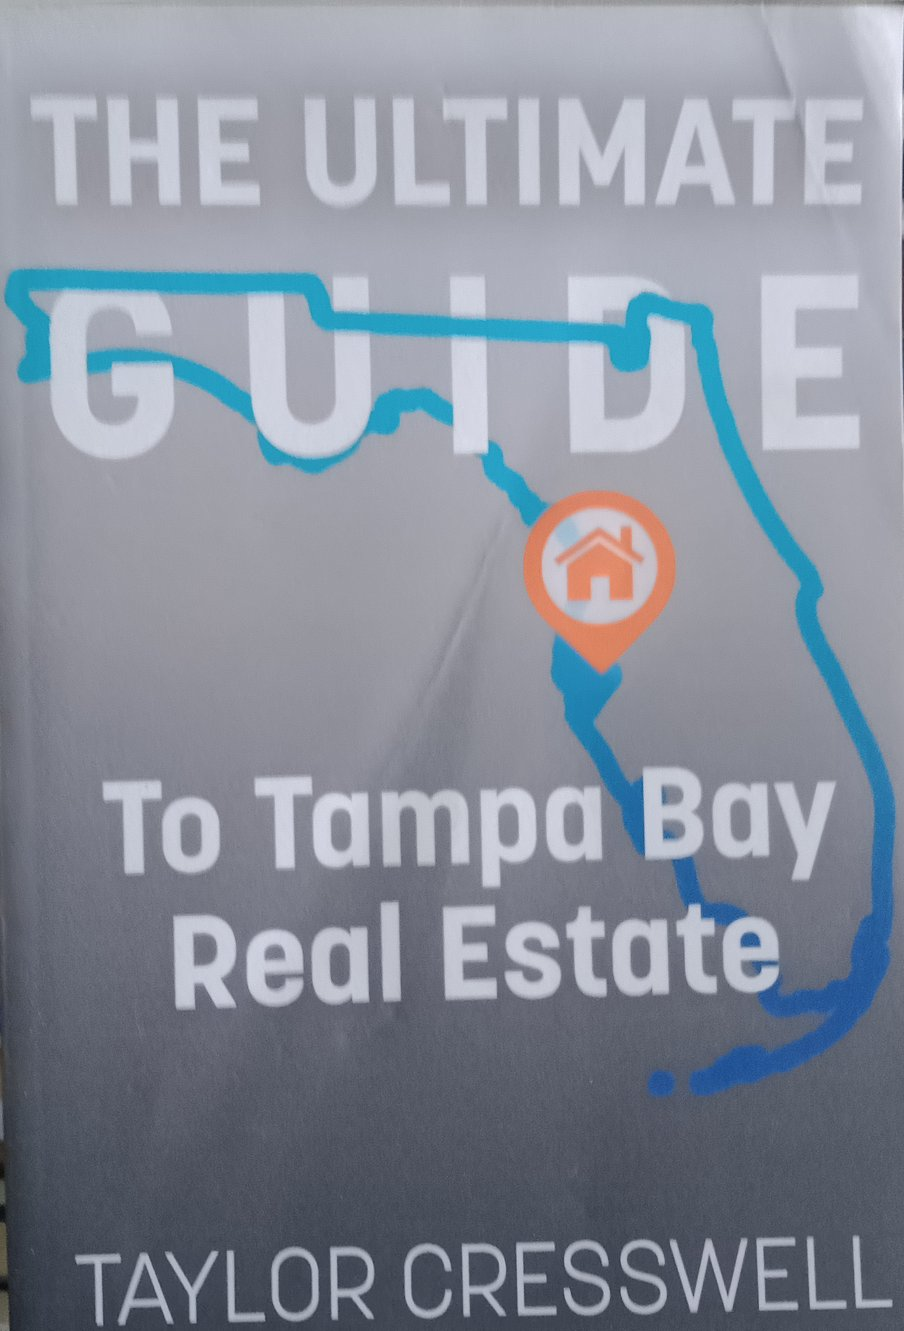 The Ultimate Guide To Tampa Bay Real Estate By Taylor Cresswell